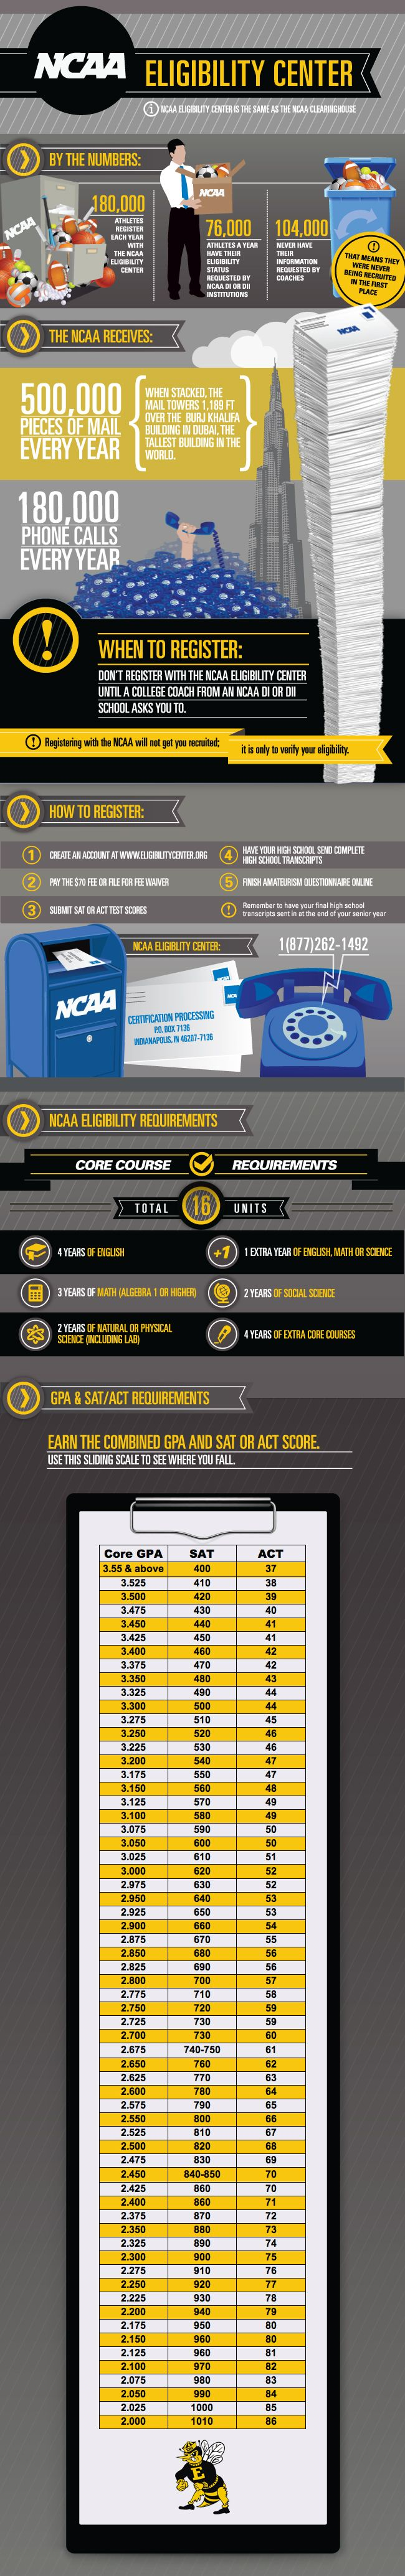 NCAA eligibility center information for recruits